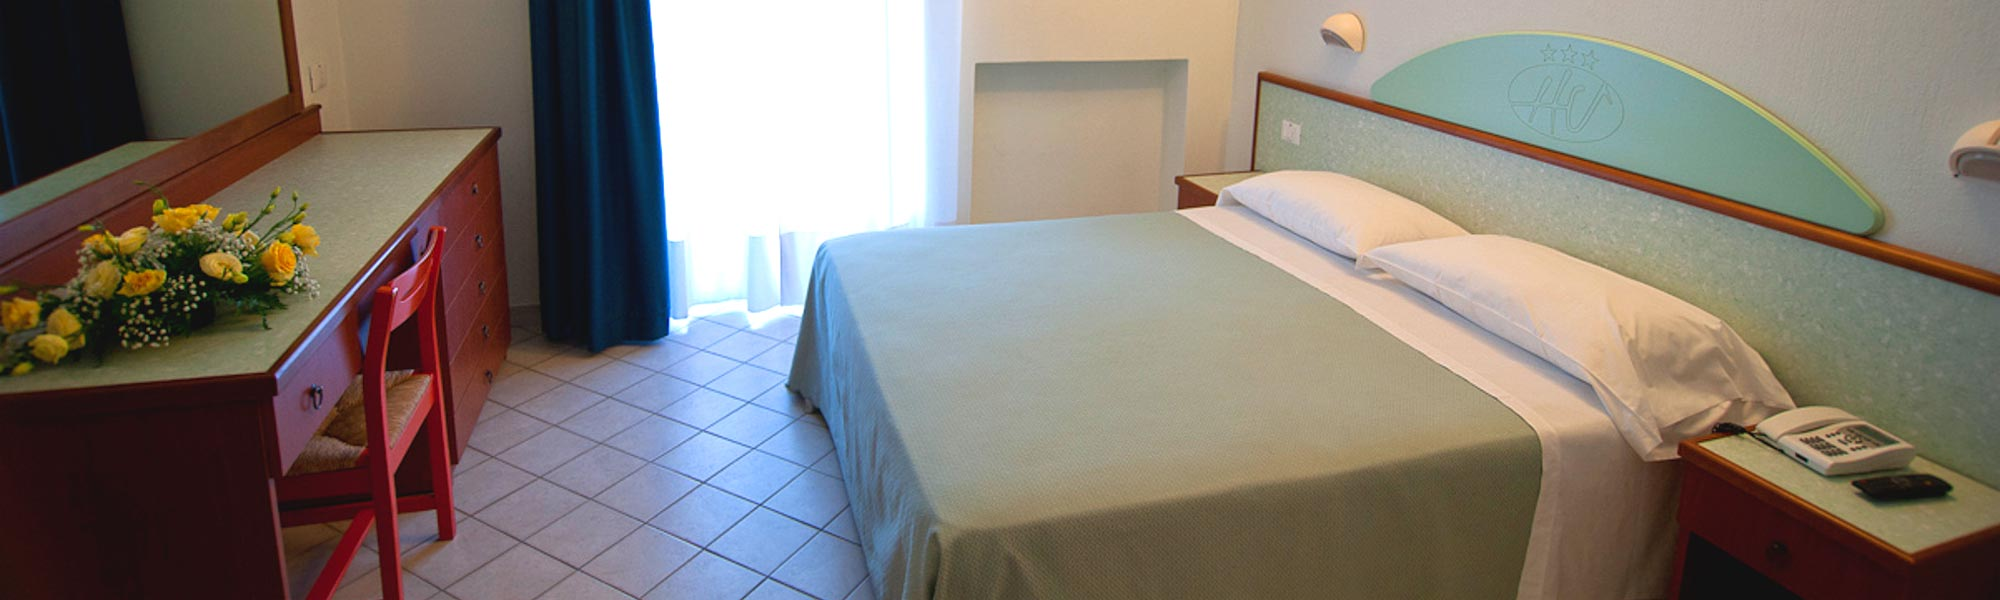 Rooms Hotel Soverato, Italy